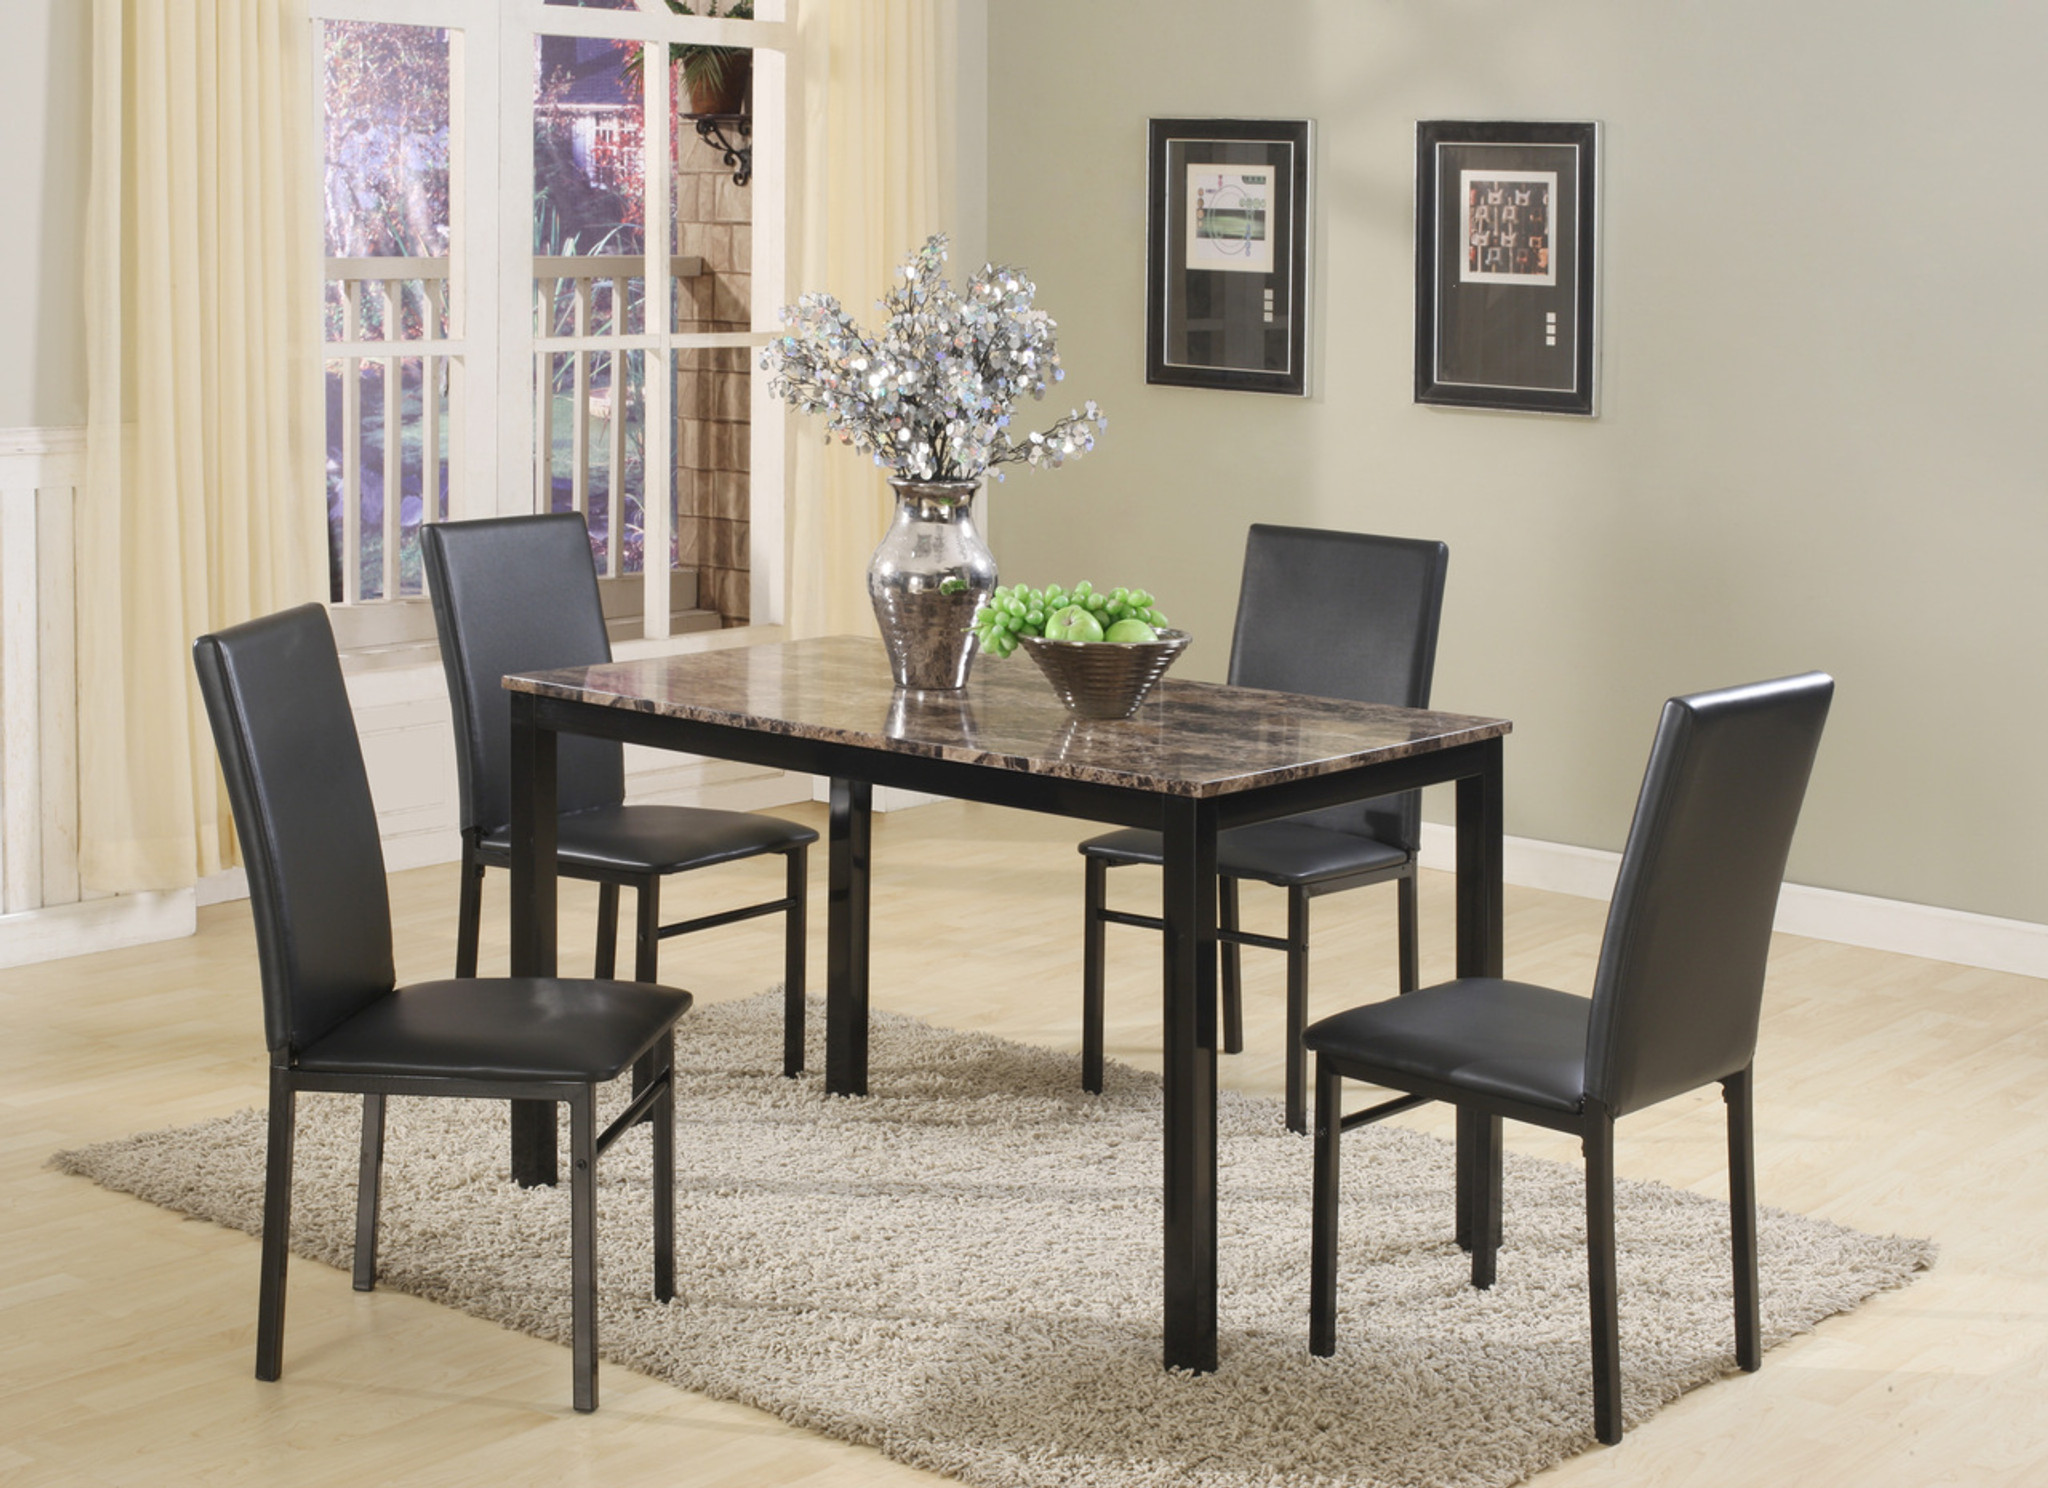 Aiden 5 PK Dinette Table and 4 Chairs